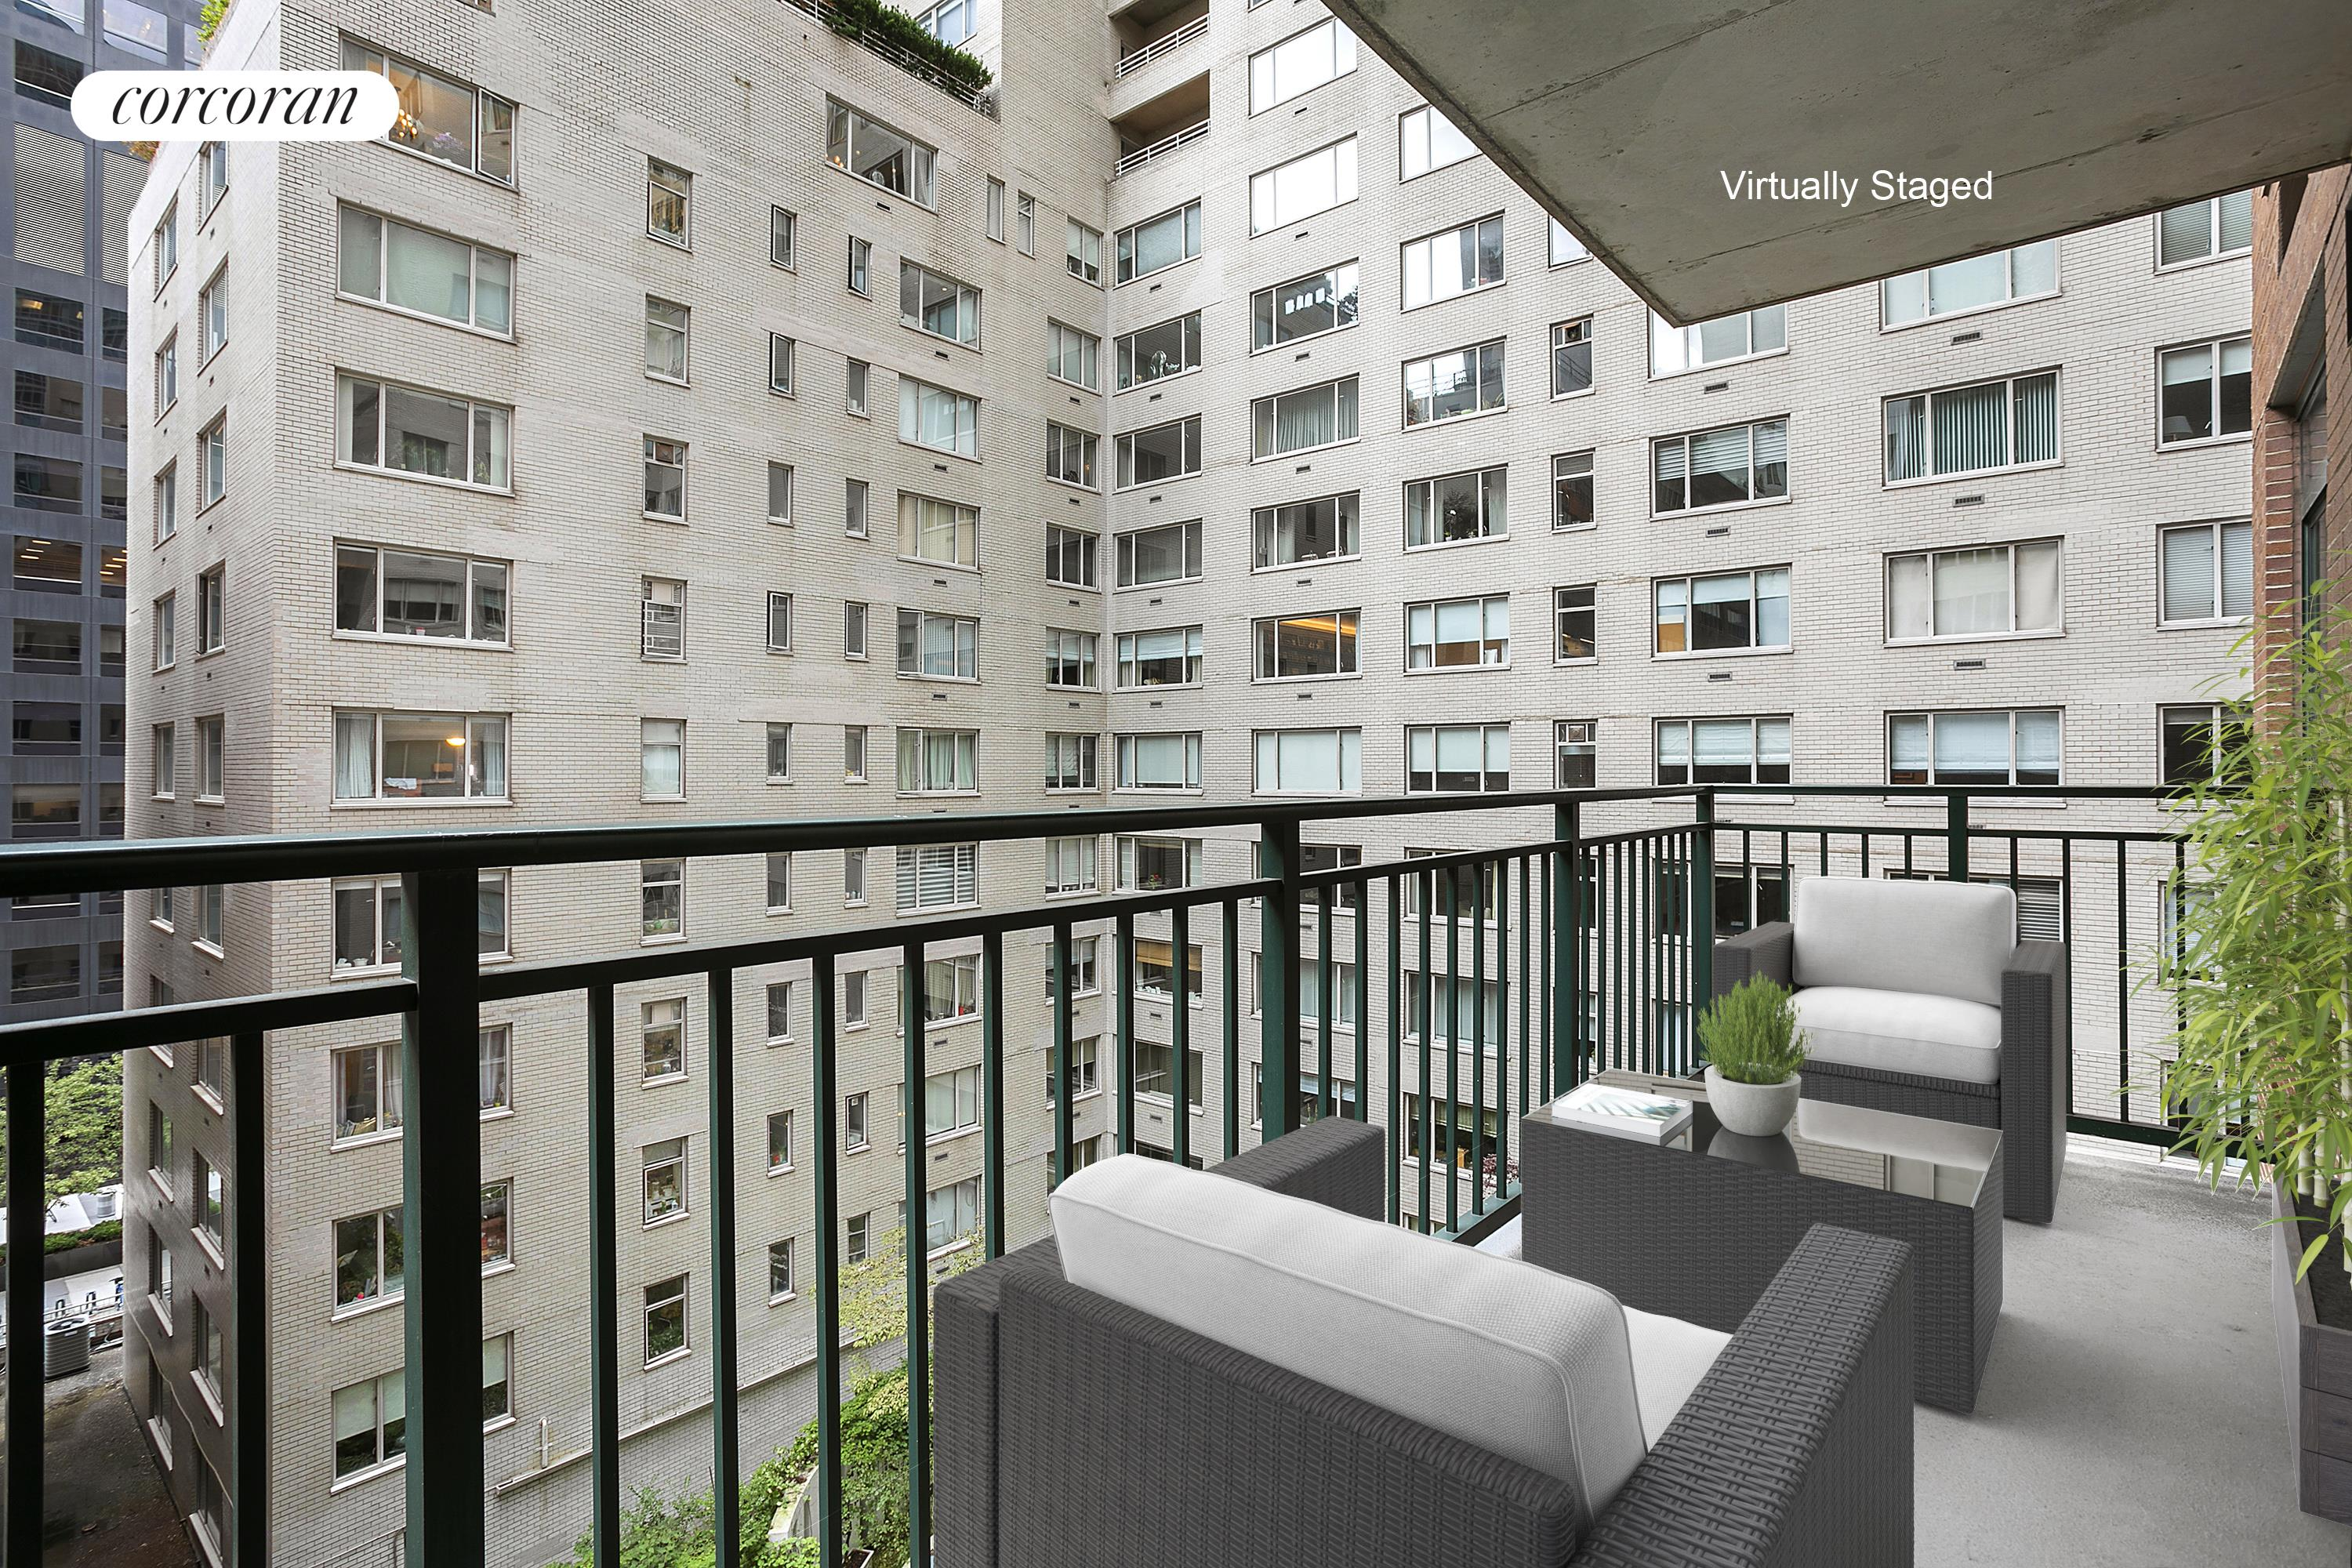 Apartment for sale at 212 East 57th Street, Apt 5 C